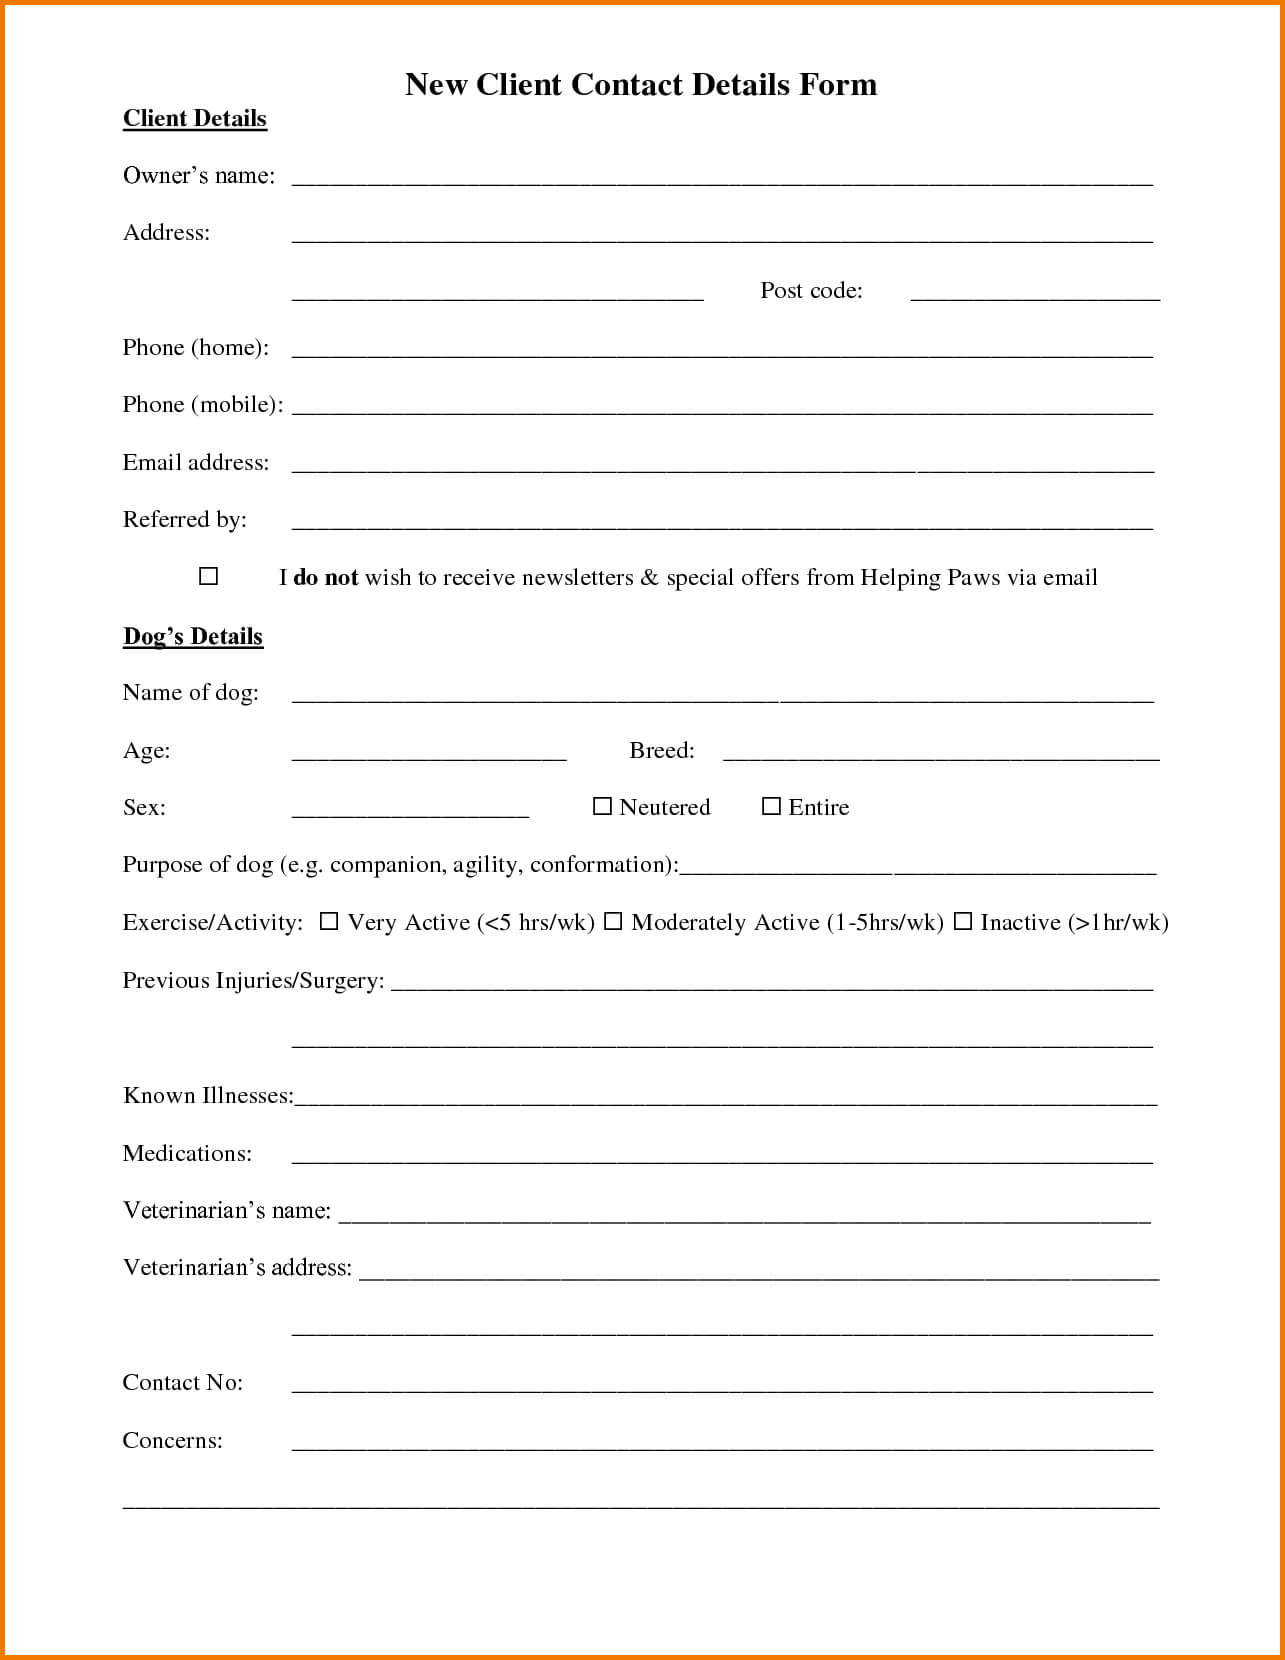 New Customer Form Template Word - Yatay.horizonconsulting.co Pertaining To Enquiry Form Template Word